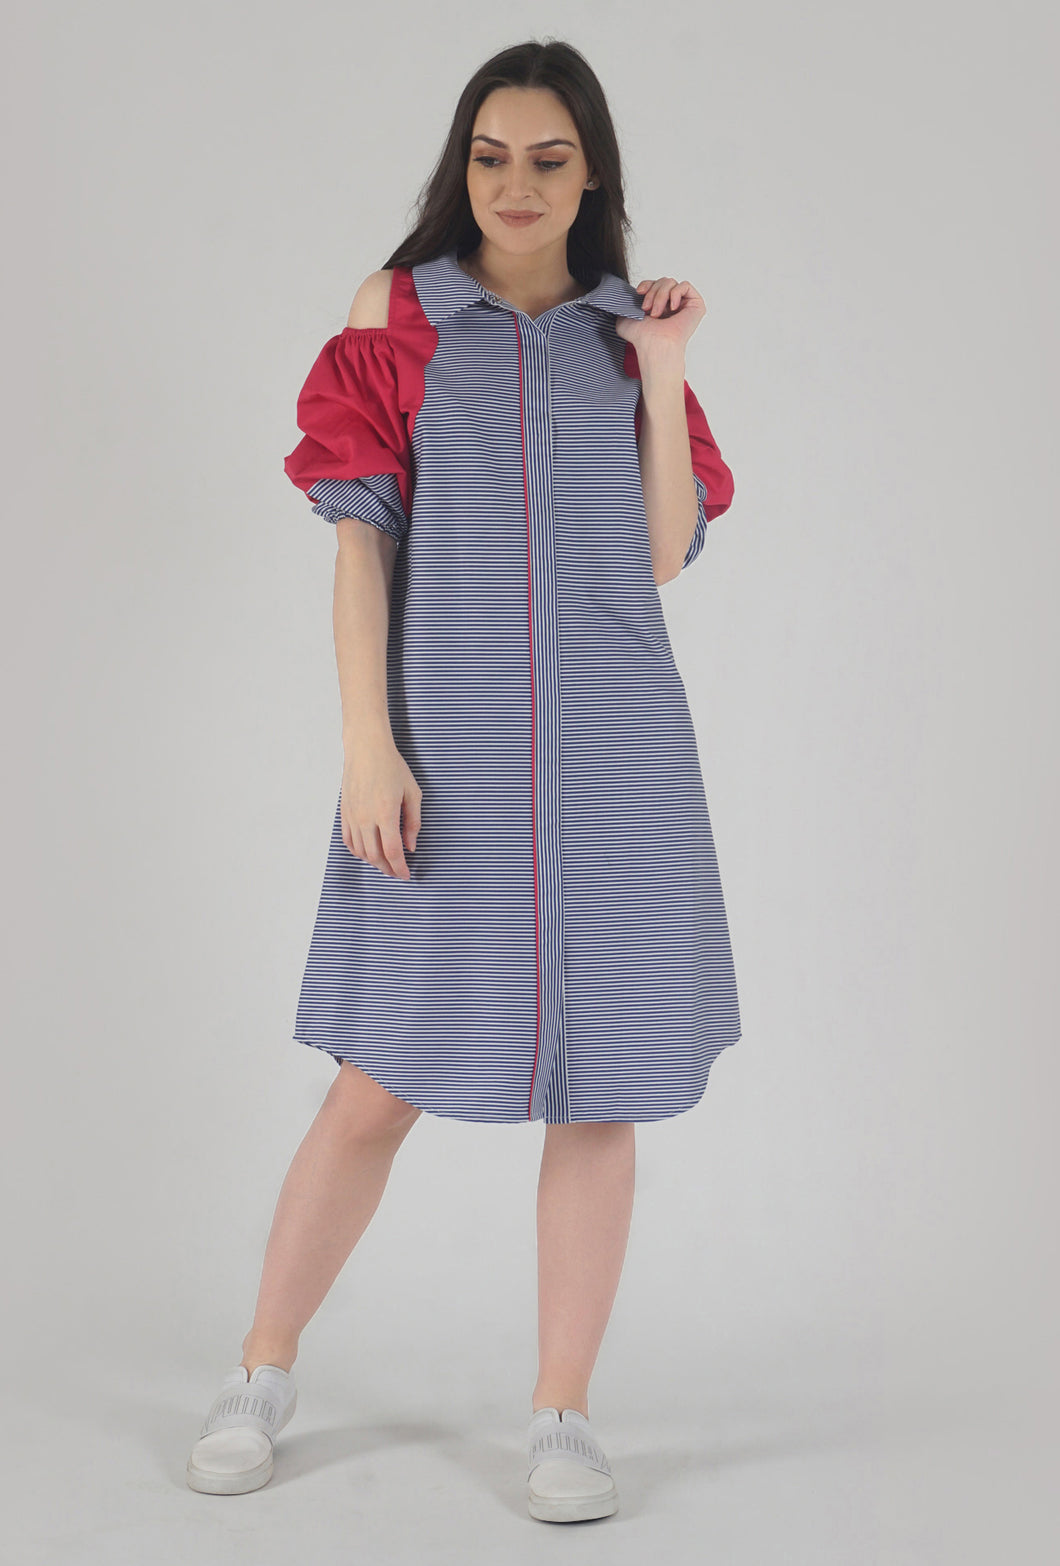 Blue Stripe Scalloping Detailed Cold Shoulder Shirt Dress style